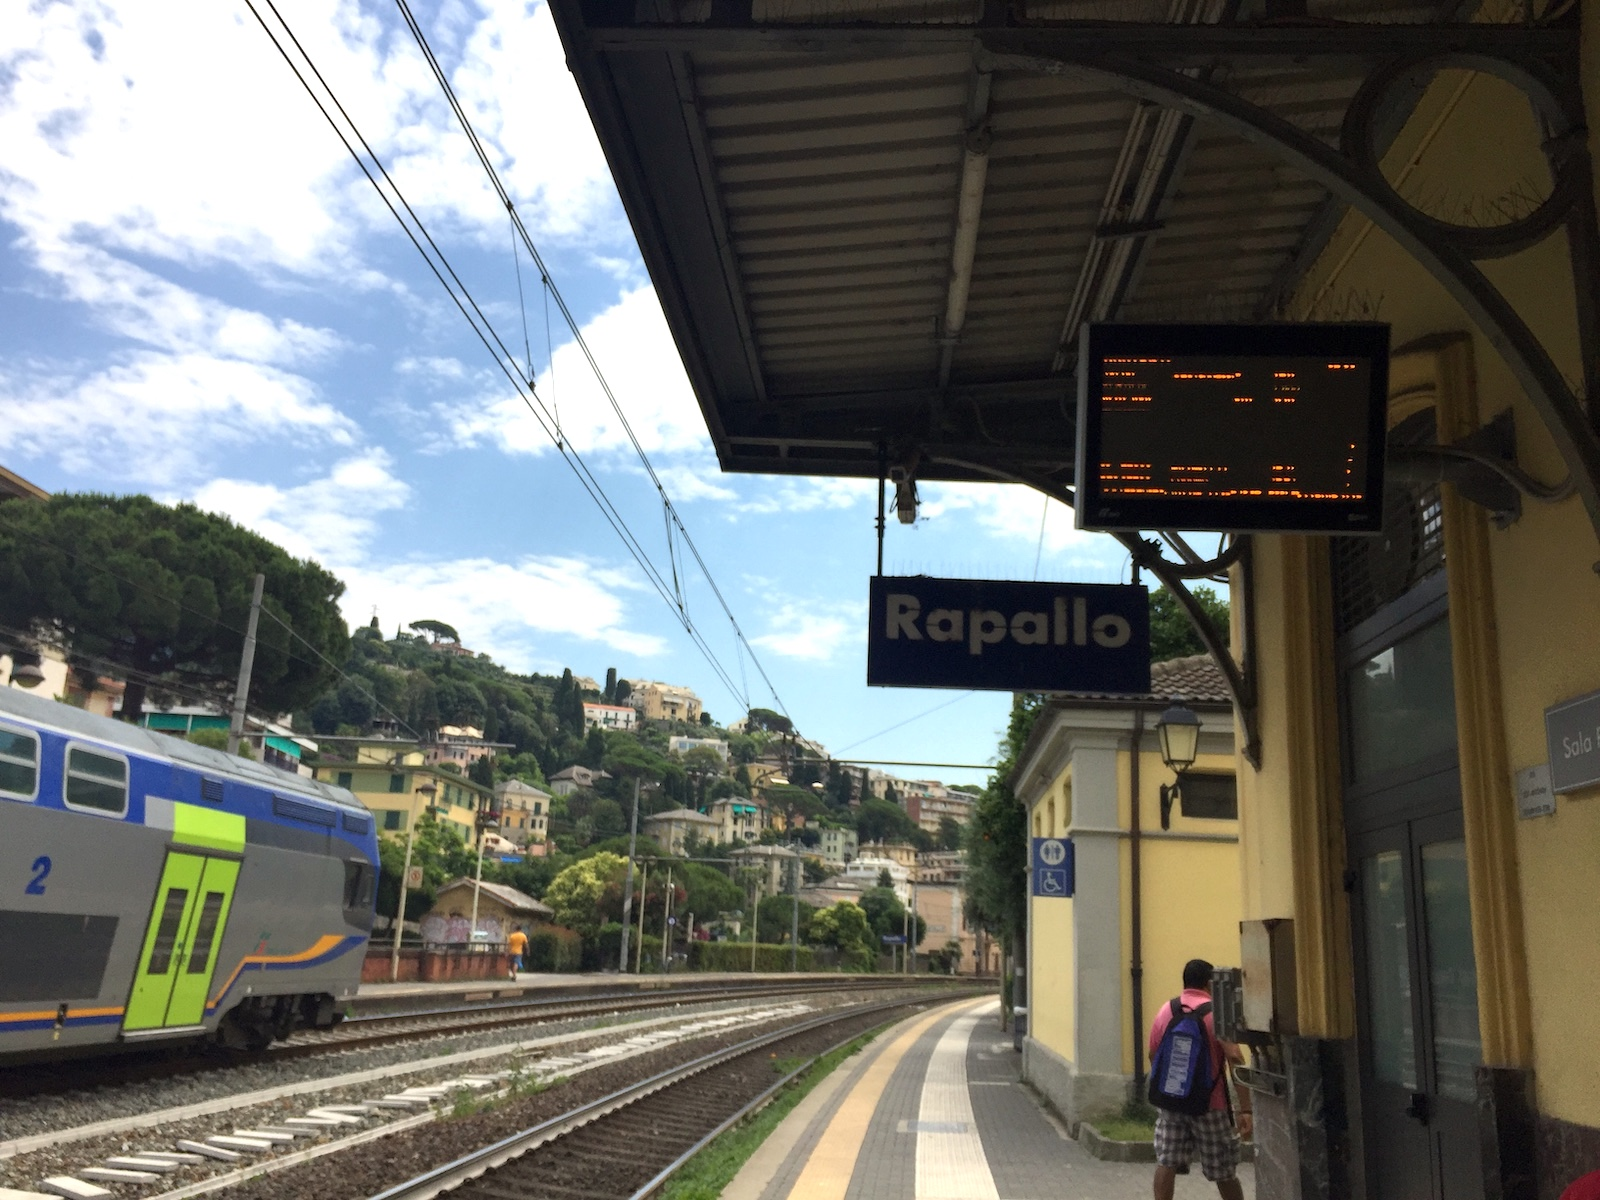 Reaching Rapallo is easy with Train station